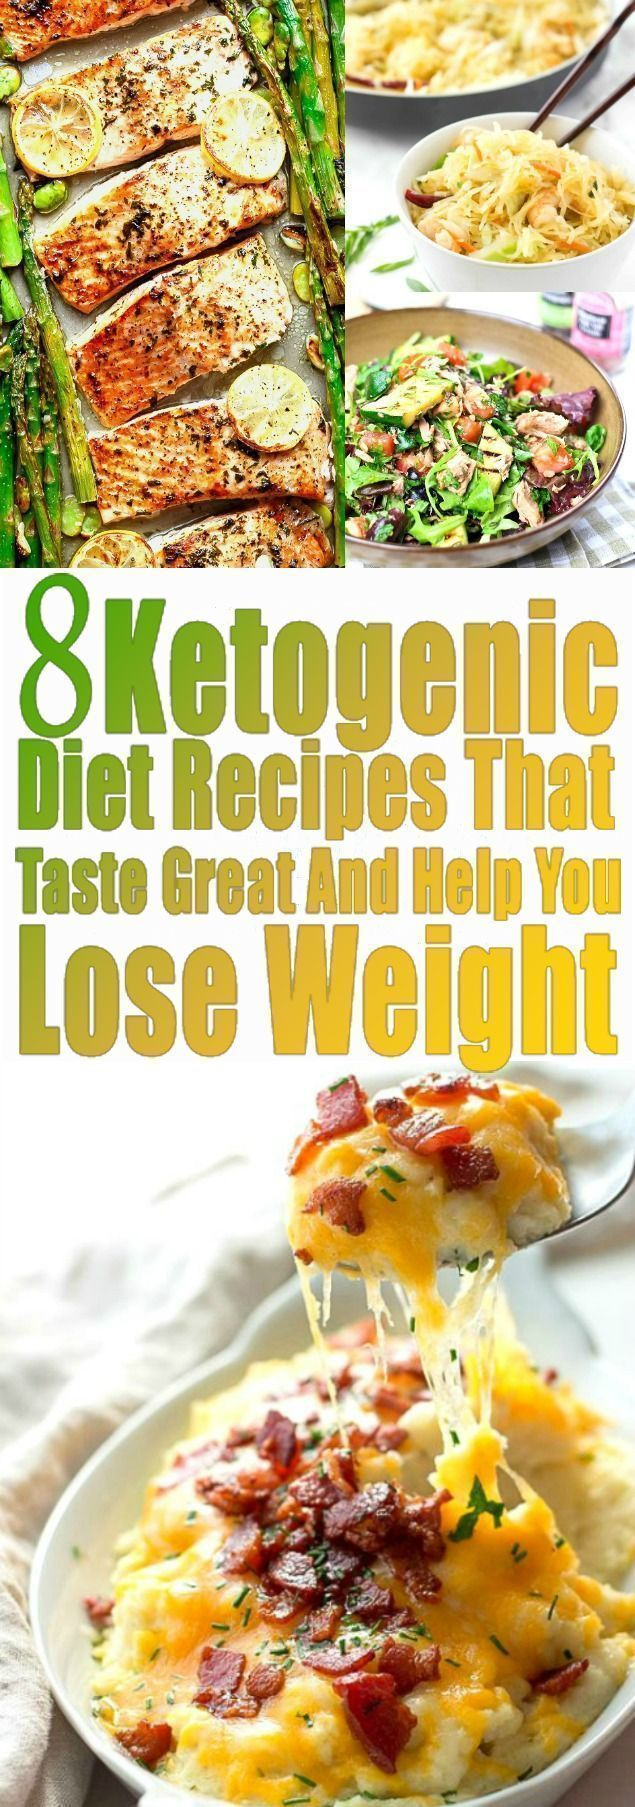 8 ketogenic diet recipes that taste great and help you lose weight 8 ketogenic diet recipes that taste great and help you lose weight healthy society ketogenic diet ketogenic recipes ketogenic diet recipes forumfinder Image collections